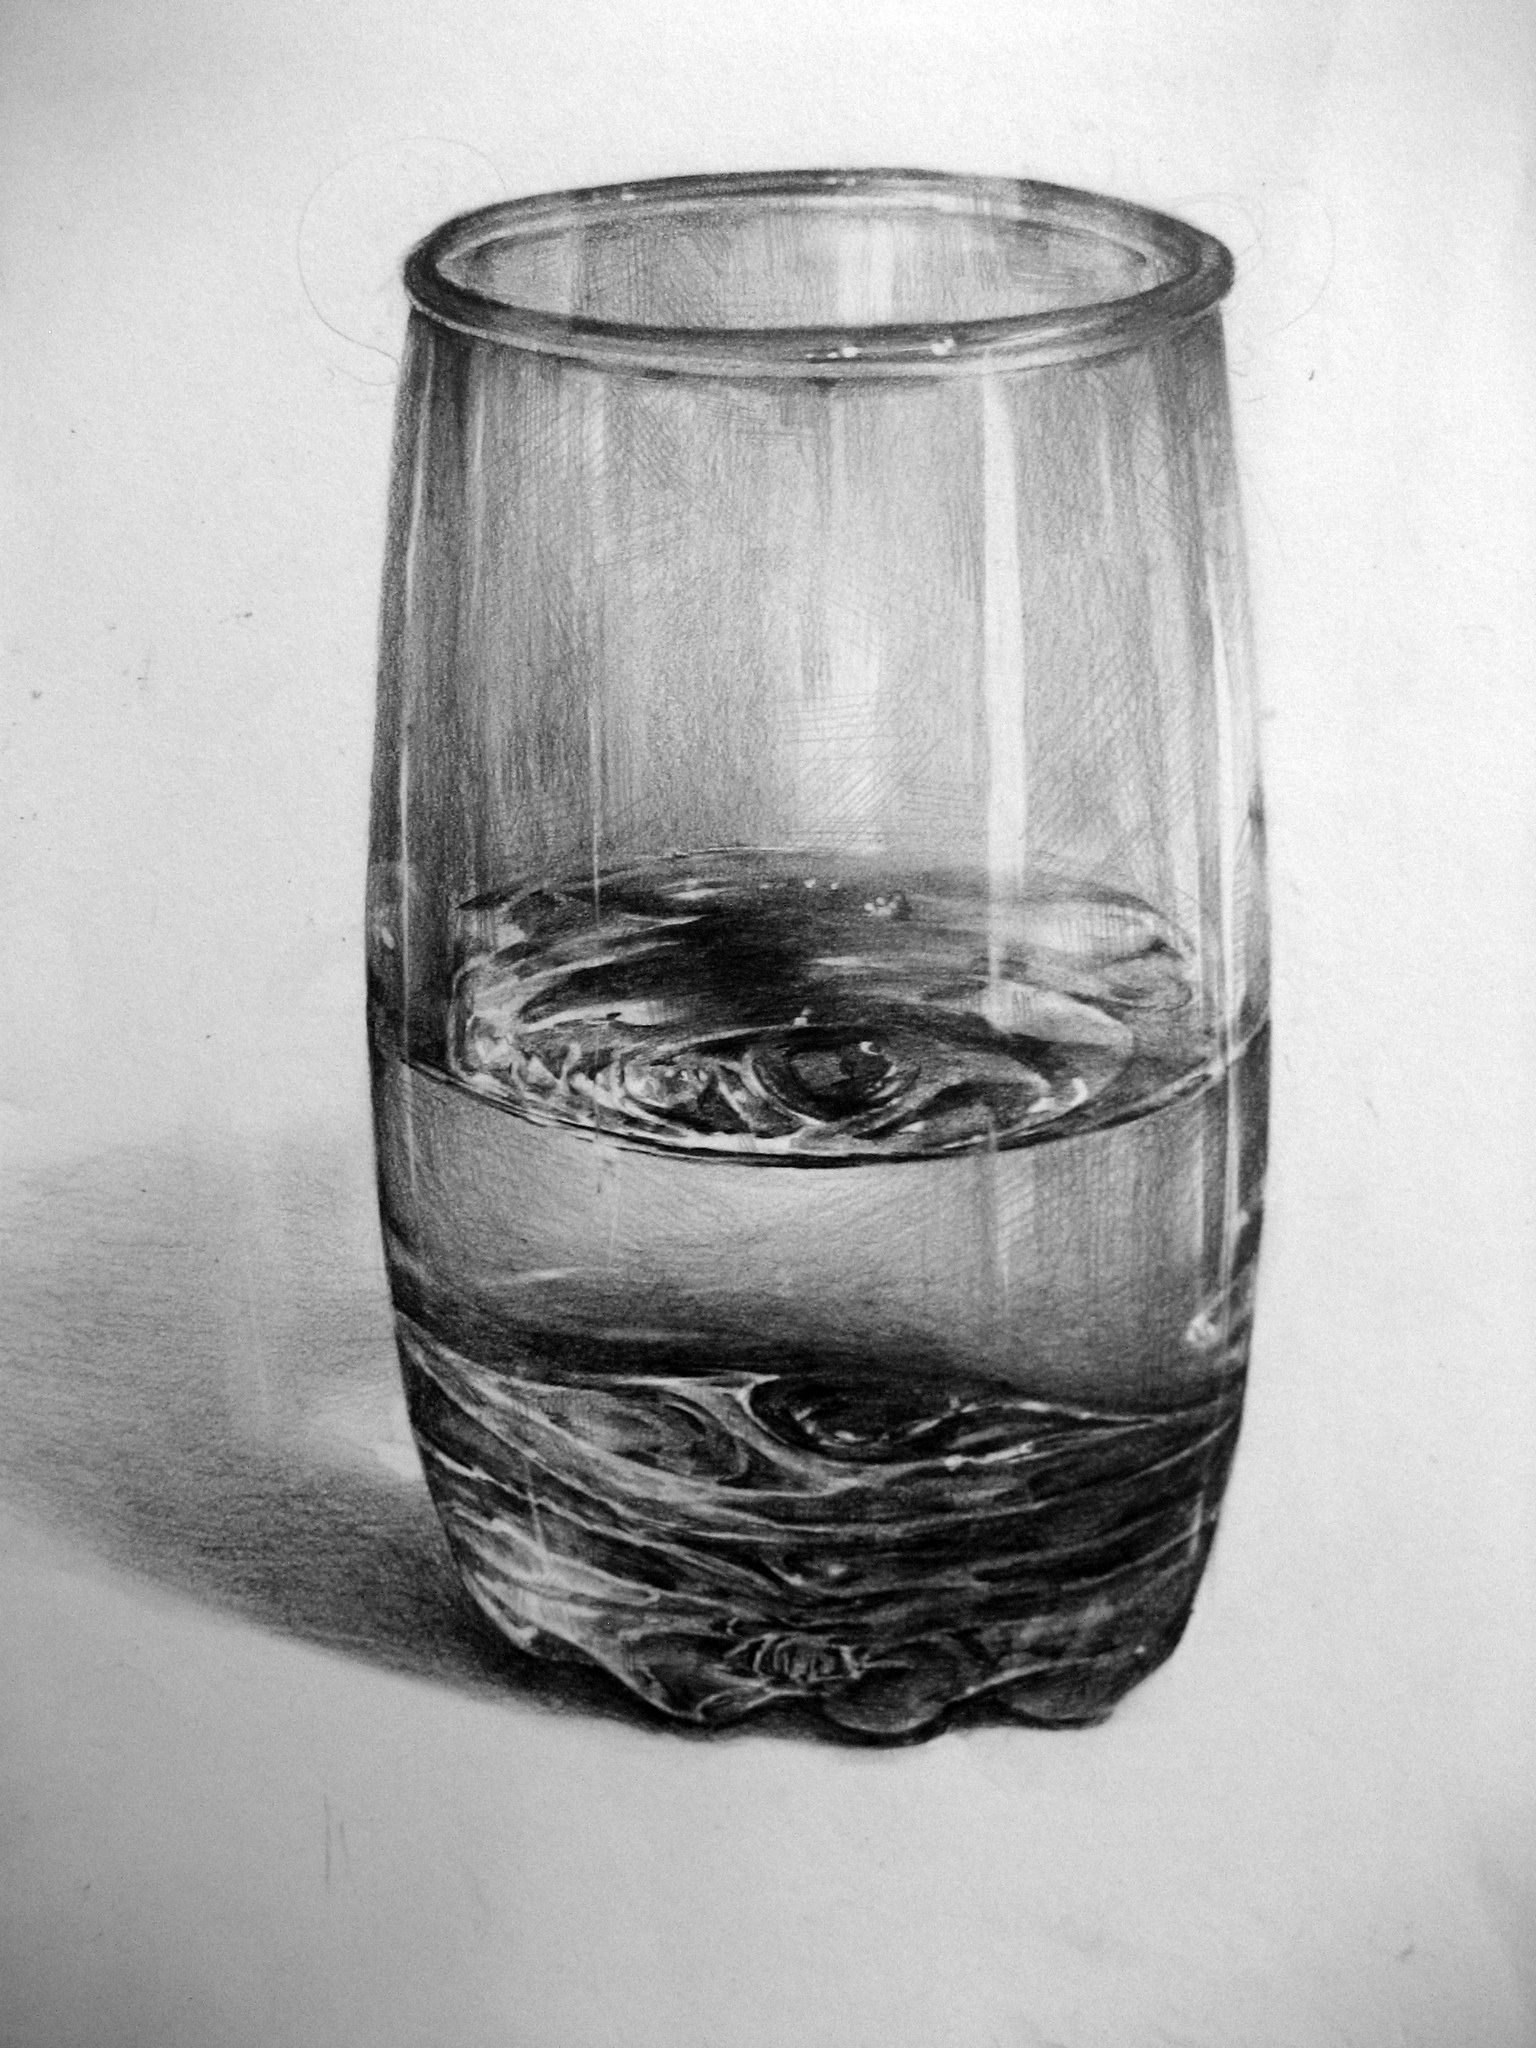 Pin by Begoña Salas on Clases in 2019 | Pencil drawings, Art